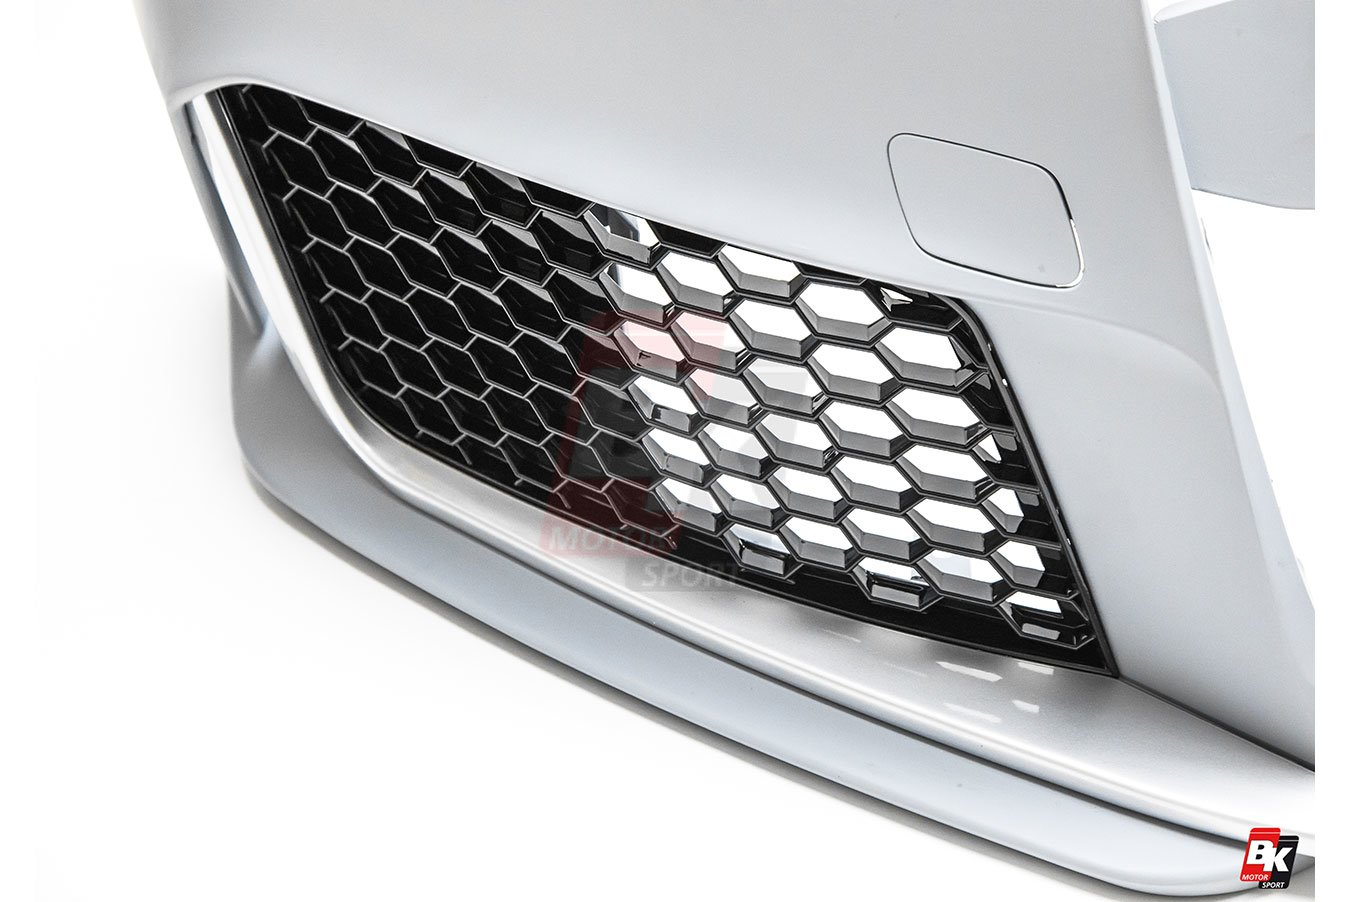 BKM Front Bumper Kit without Front Grille (RS Style), fits Audi A4/S4 B9